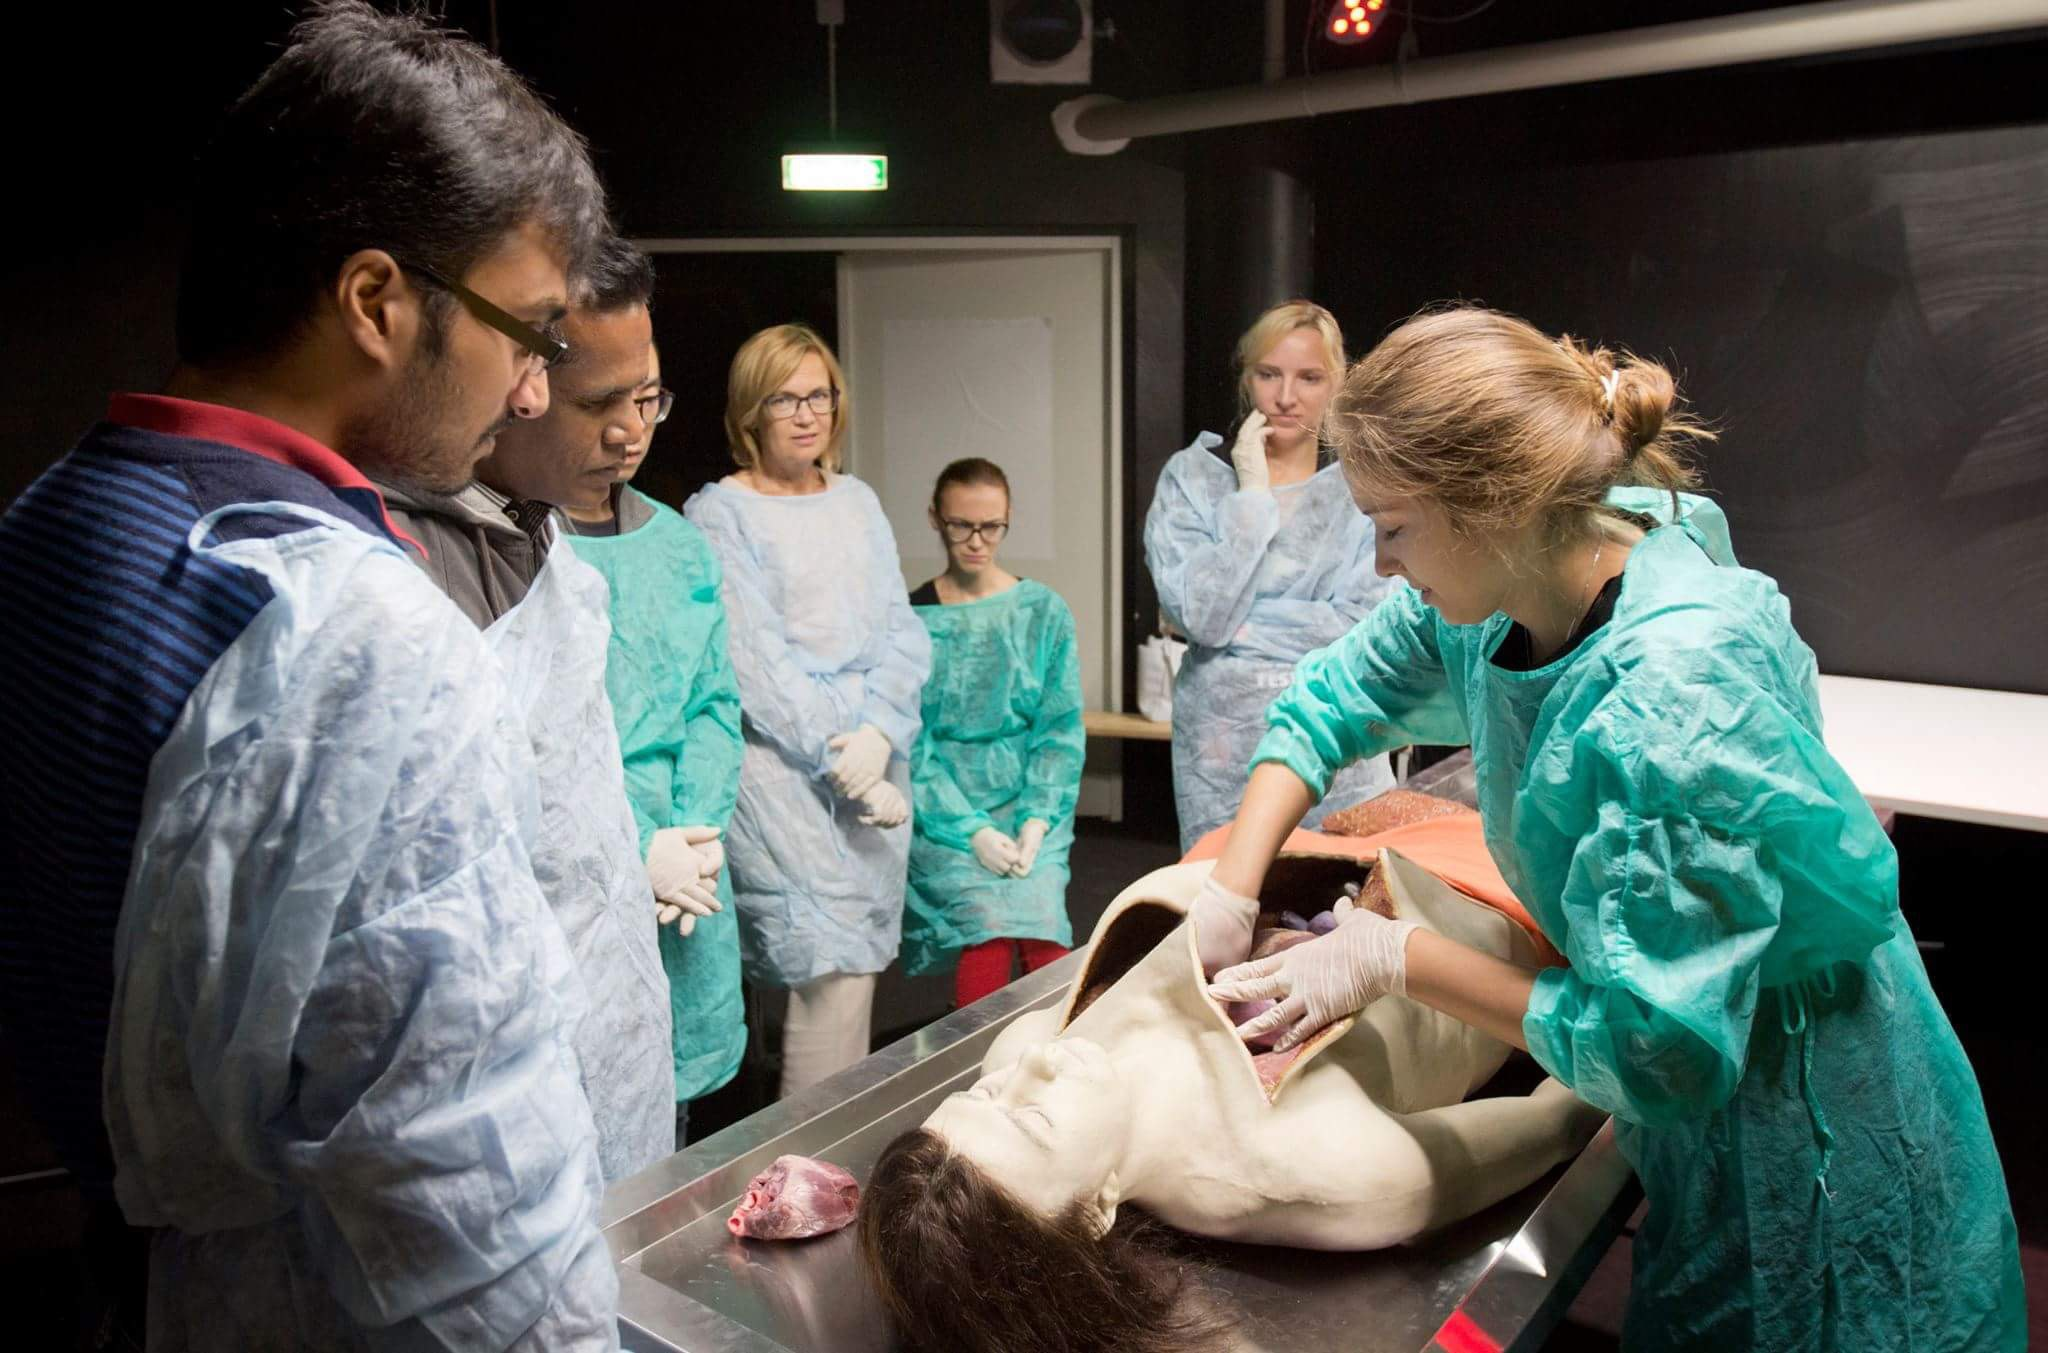 Life-sized and lifelike autopsy doll for a hands-on necropsy demonstration featuring also some real (pigs') organs